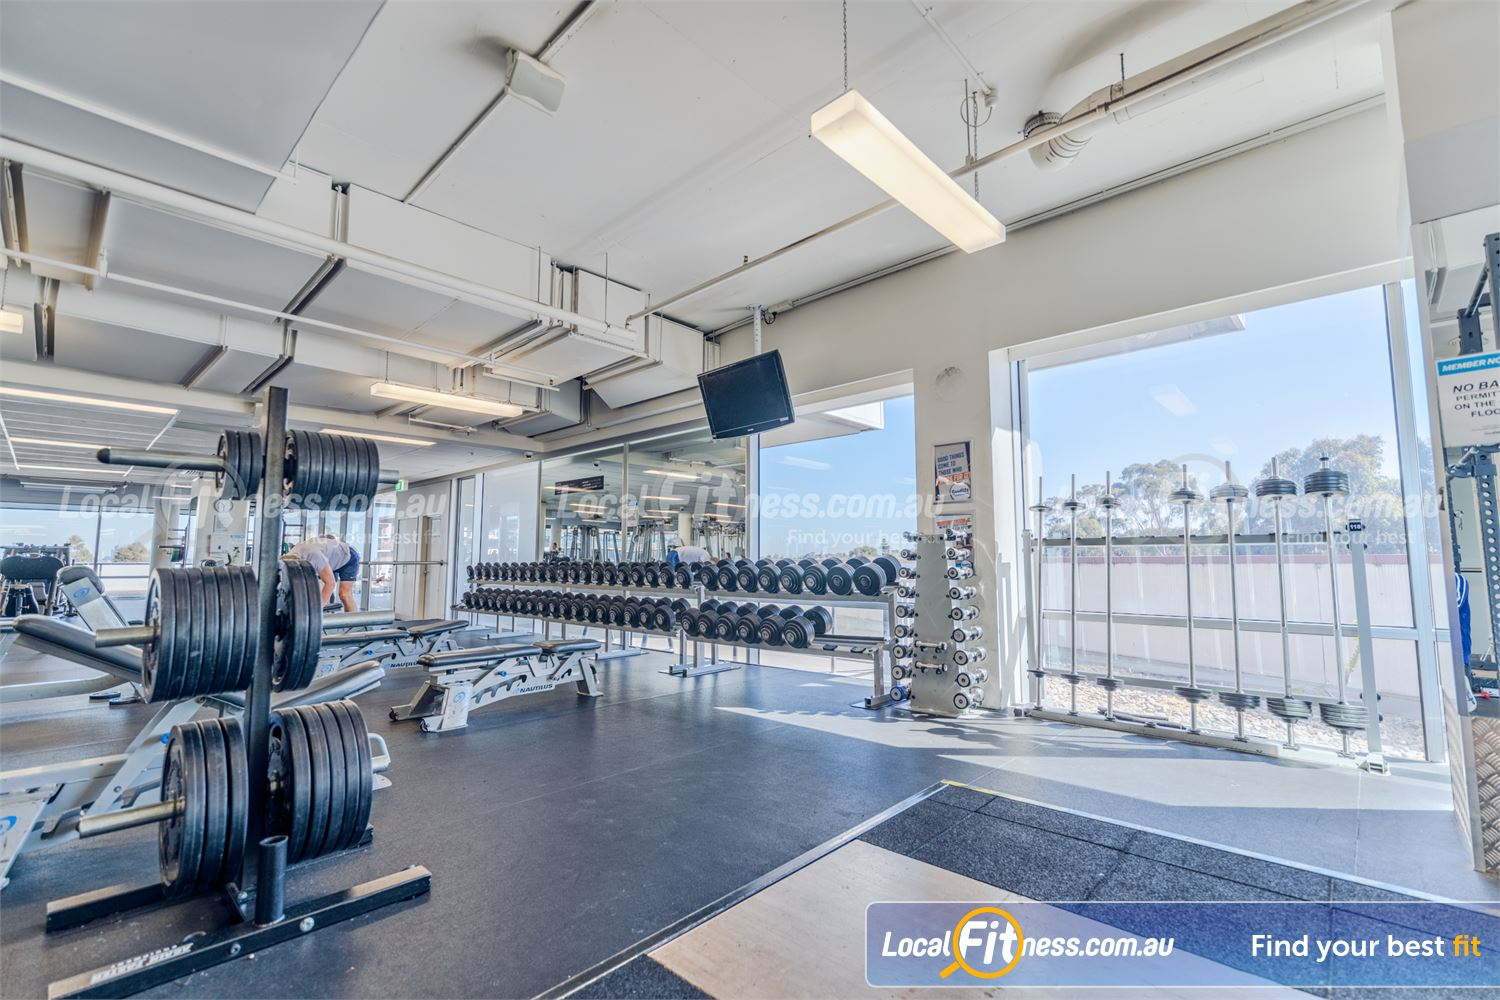 Goodlife Health Clubs Camberwell Fully range of free-weights includes dumbbells, barbells and more.